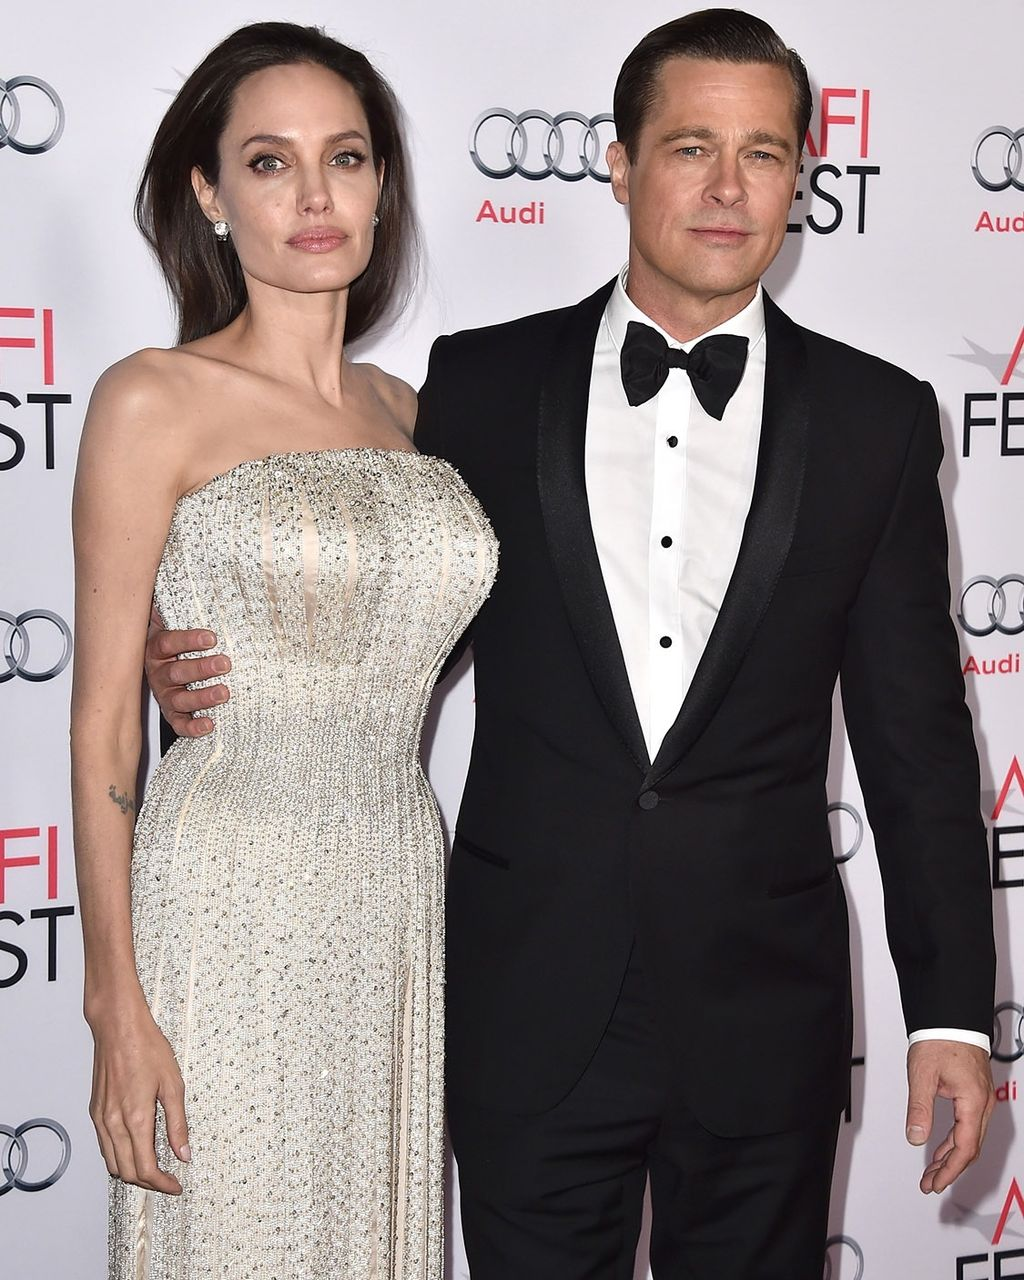 AFI Fest - By The Sea Premiere